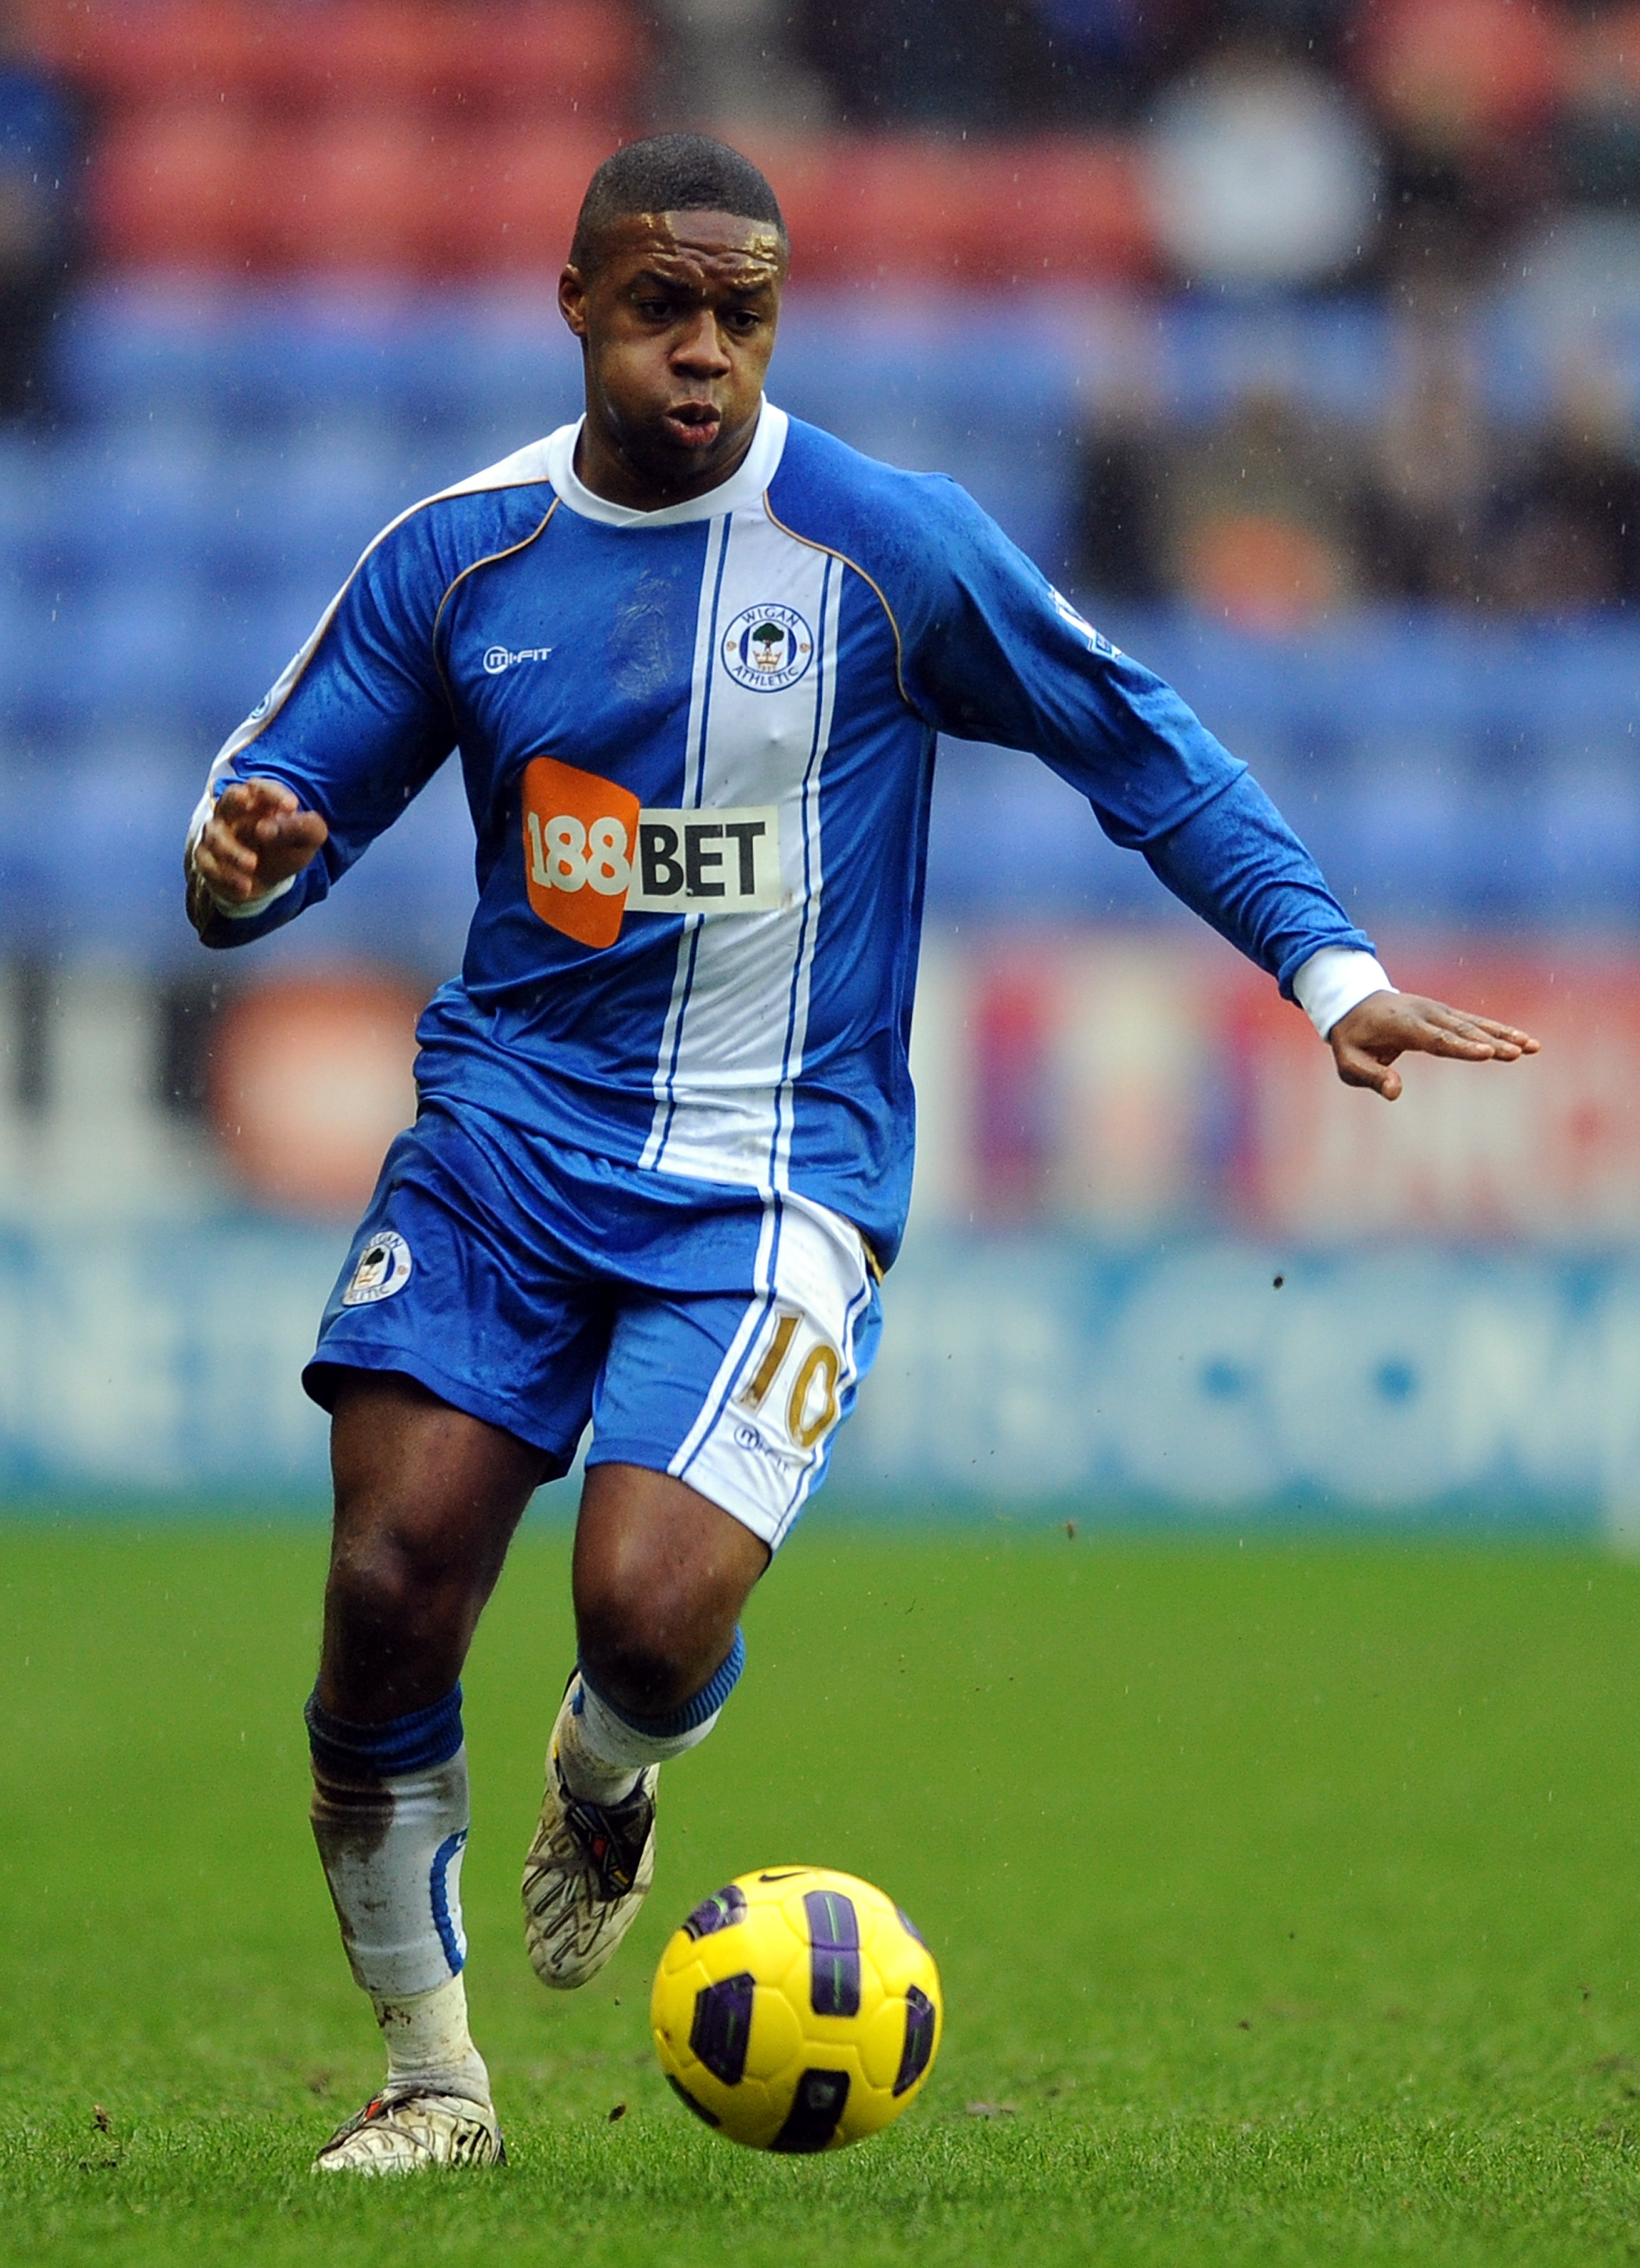 WIGAN, ENGLAND - FEBRUARY 05:  Charles N'Zogbia of Wigan Athletic competes during the Barclays Premier League match between Wigan Athletic and Blackburn Rovers at DW Stadium on February 5, 2011 in Wigan, England.  (Photo by Chris Brunskill/Getty Images)